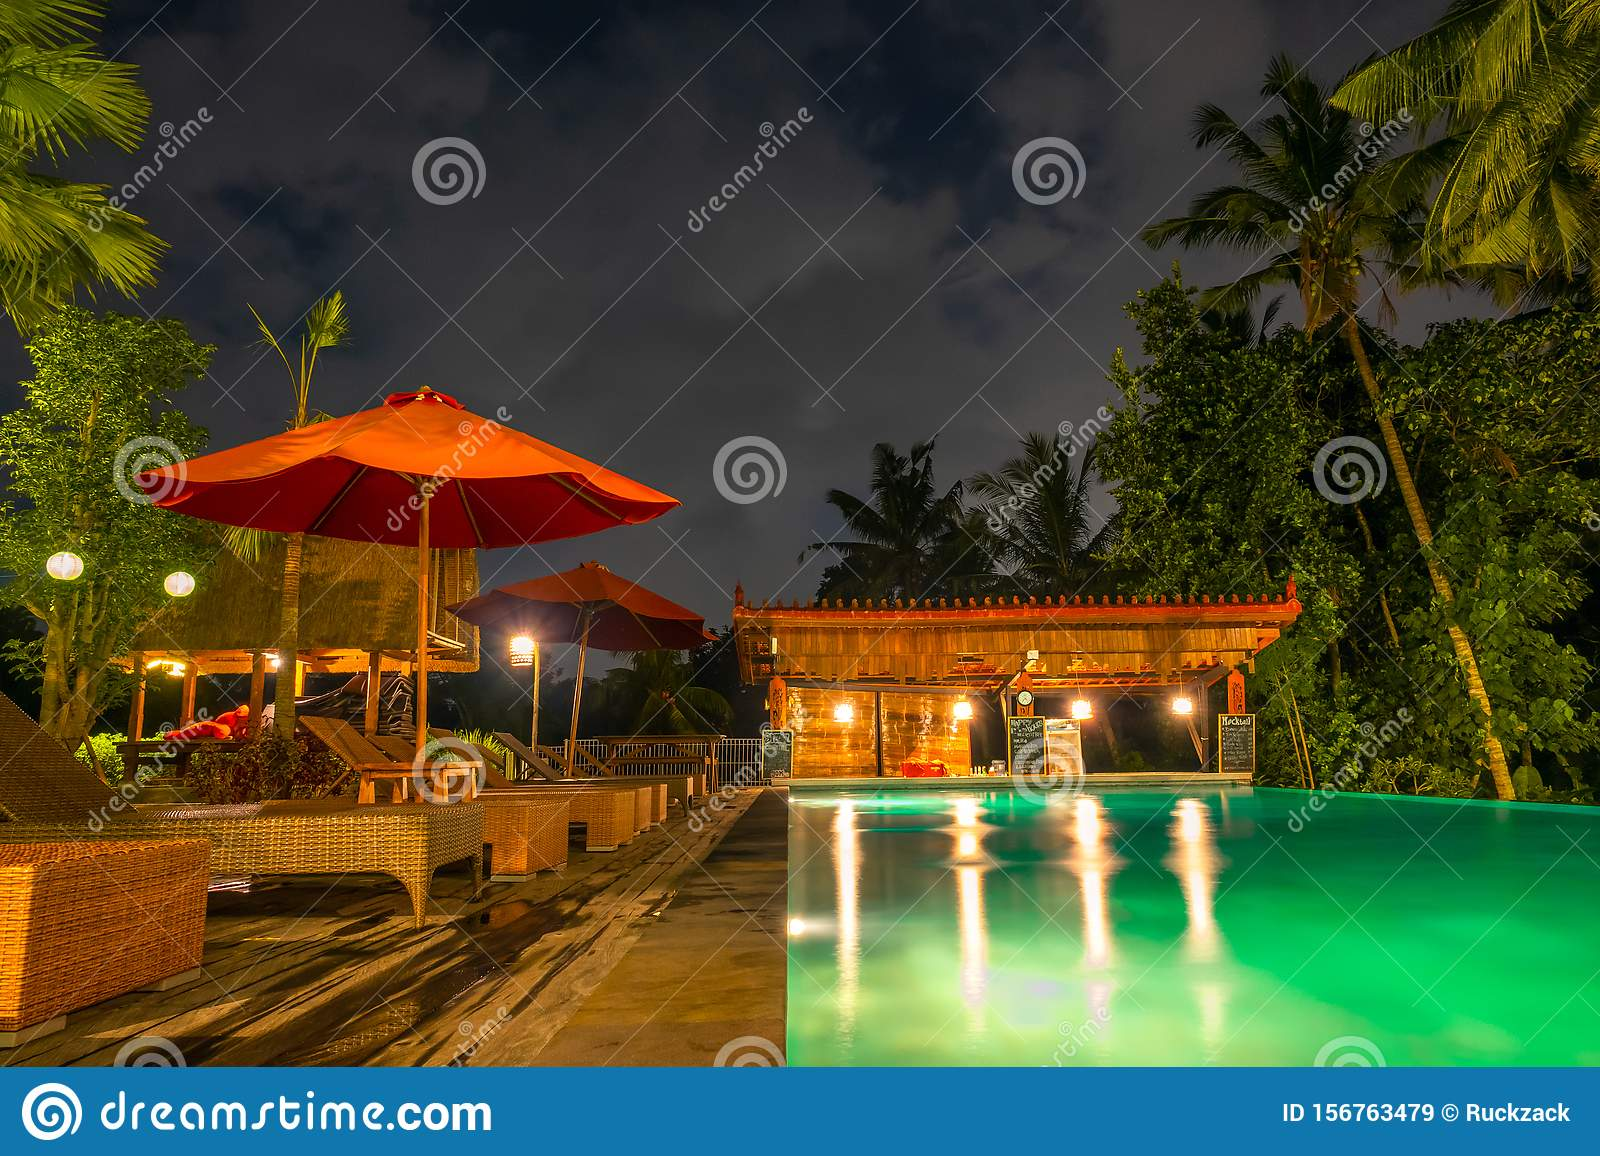 Night Pool in the Rainforest